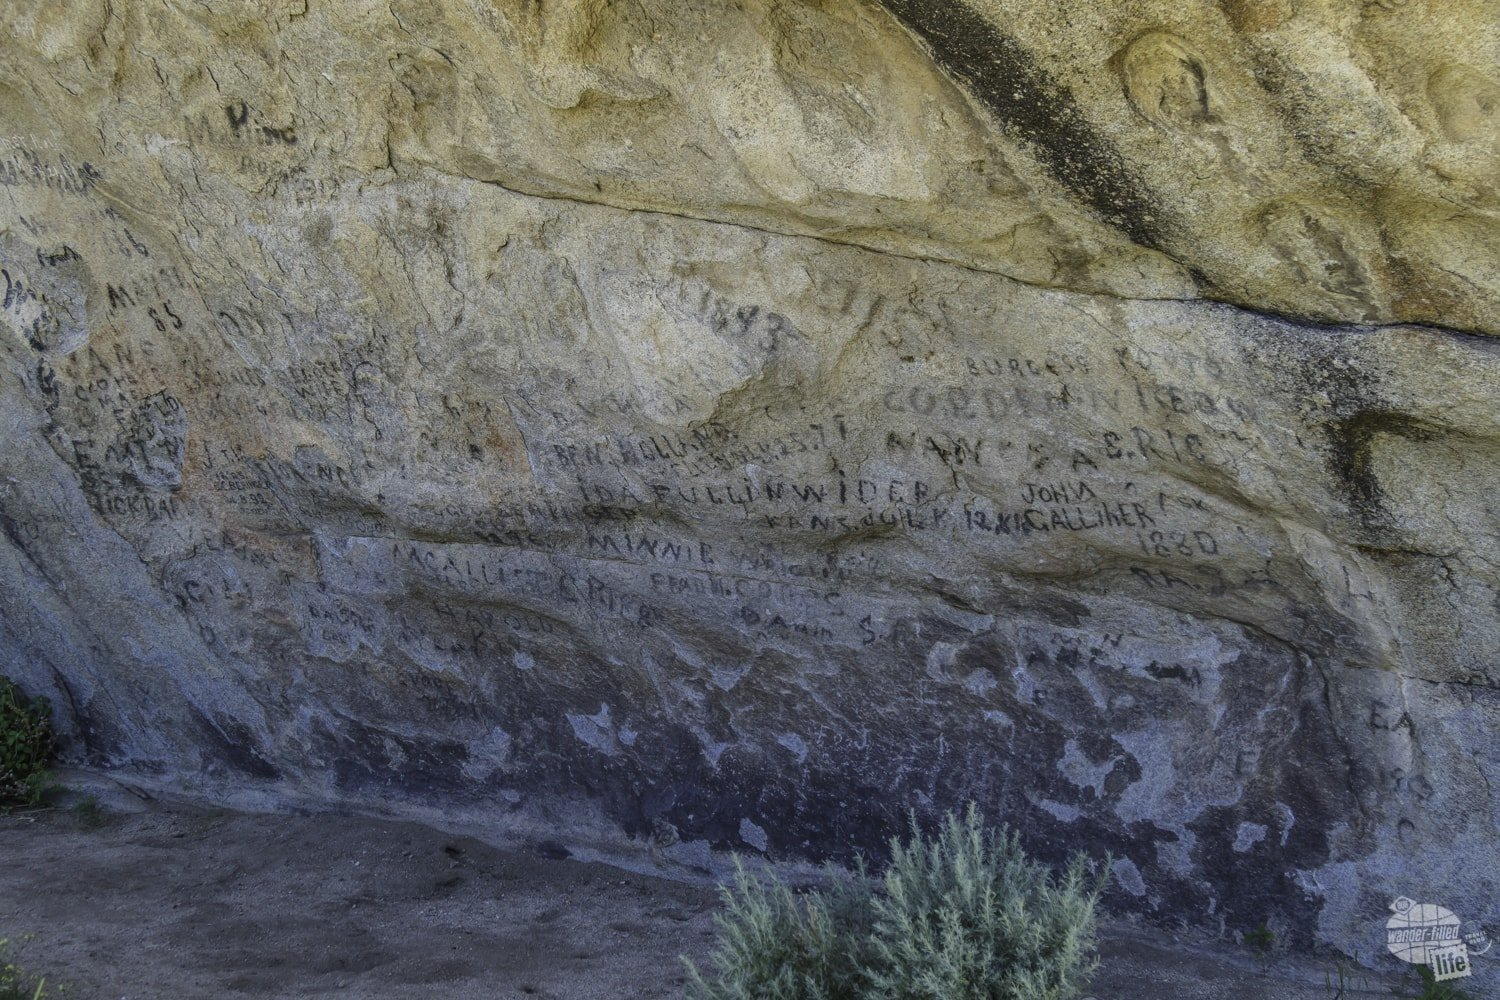 City of Rocks is home to part of the California Trail and Camp Rock served as a place where settlers headed west wrote their names as they passed.